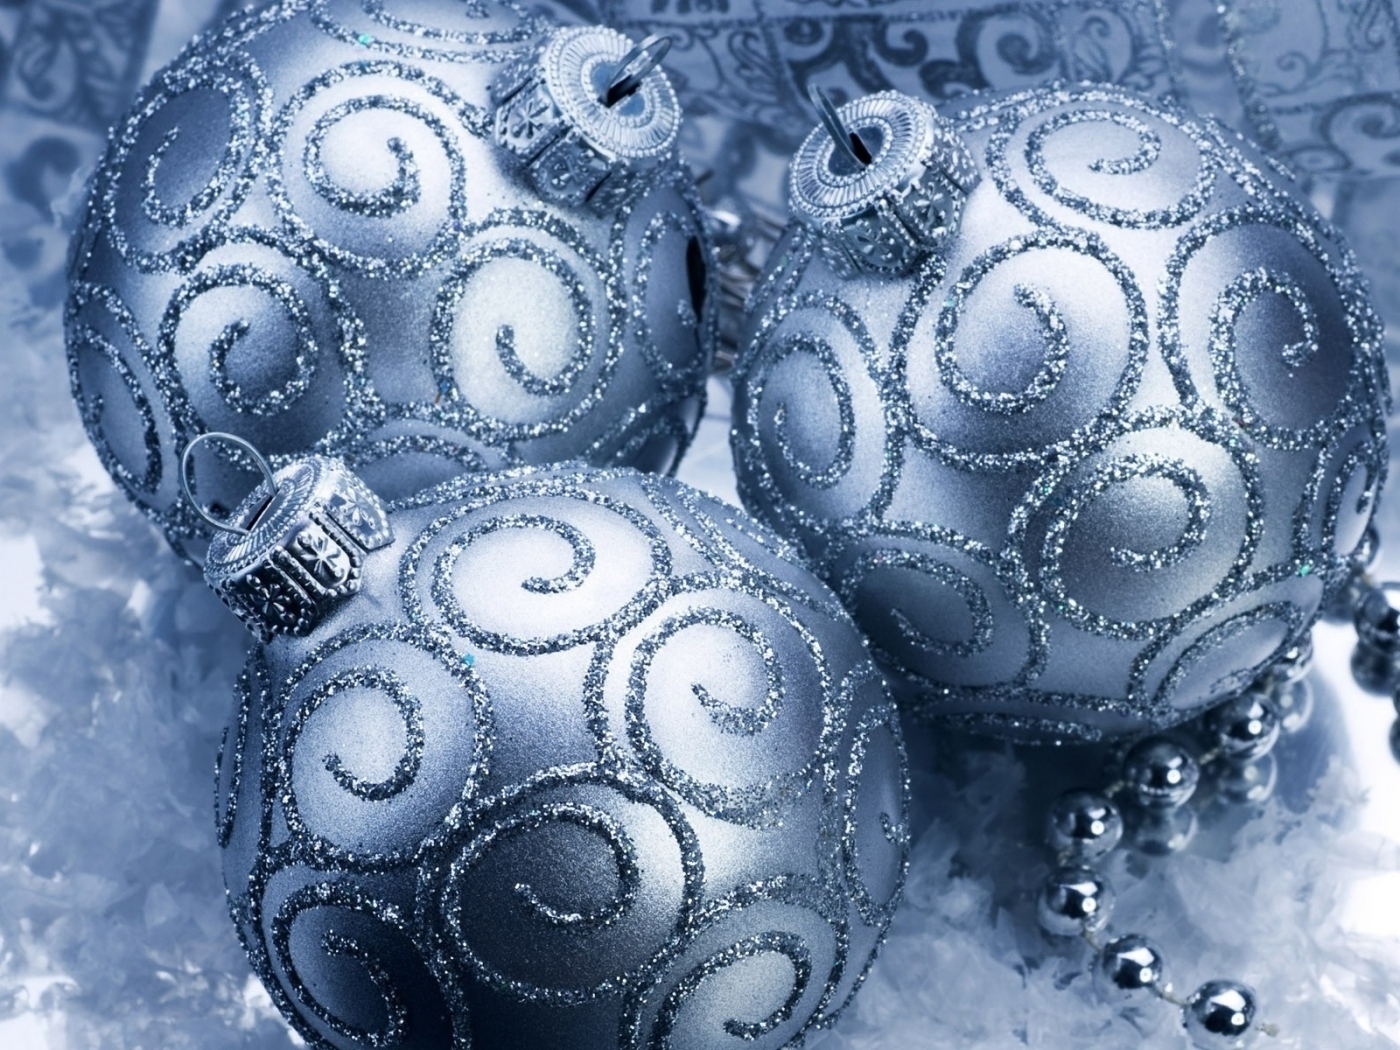 25848 download wallpaper Holidays, New Year, Christmas, Xmas screensavers and pictures for free